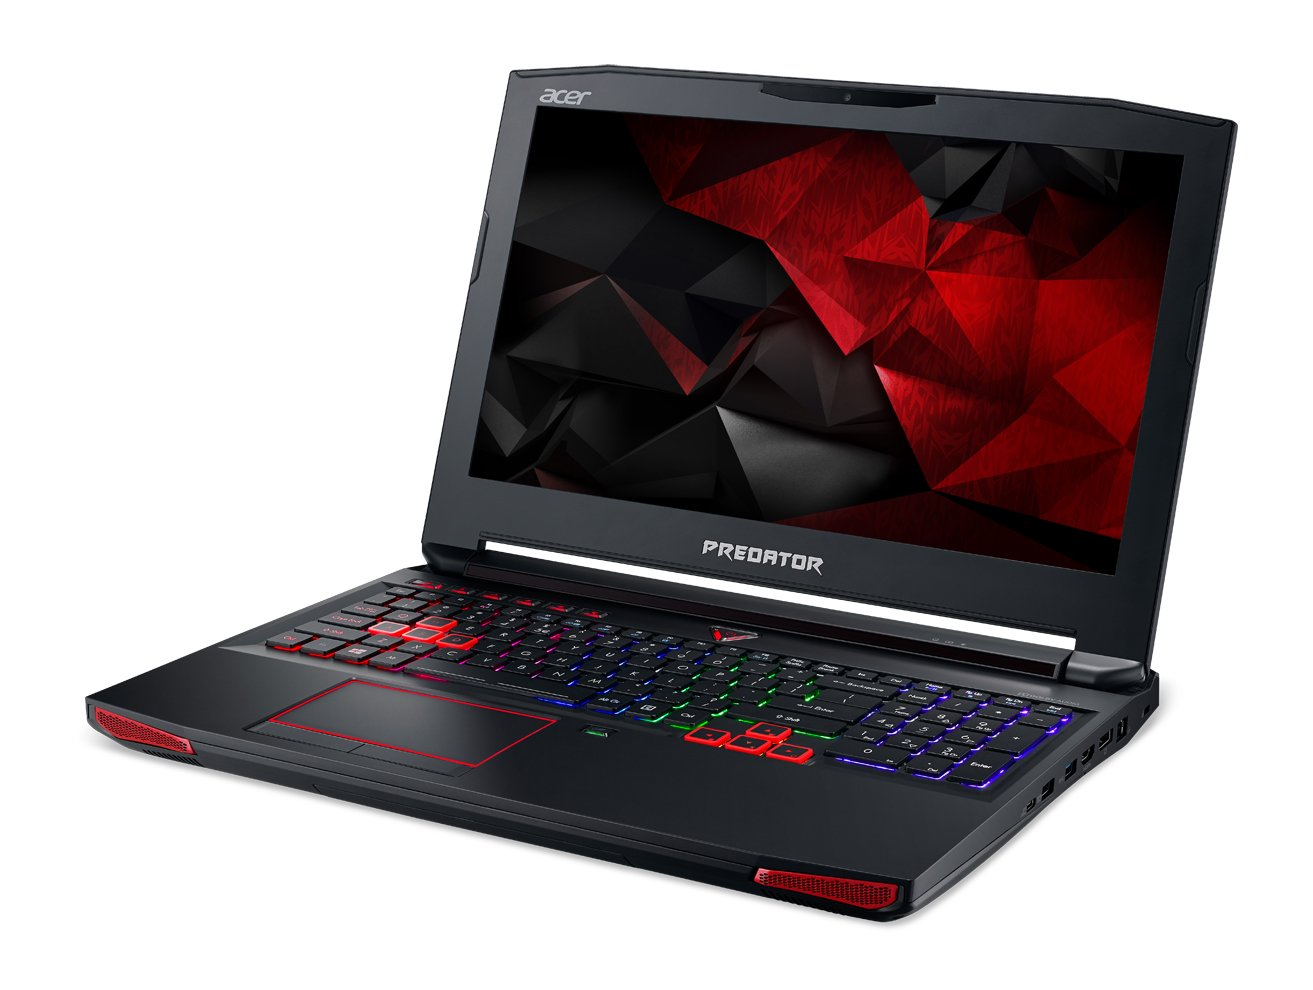 Acer Predator G9-591R Intel ME Treiber Windows XP